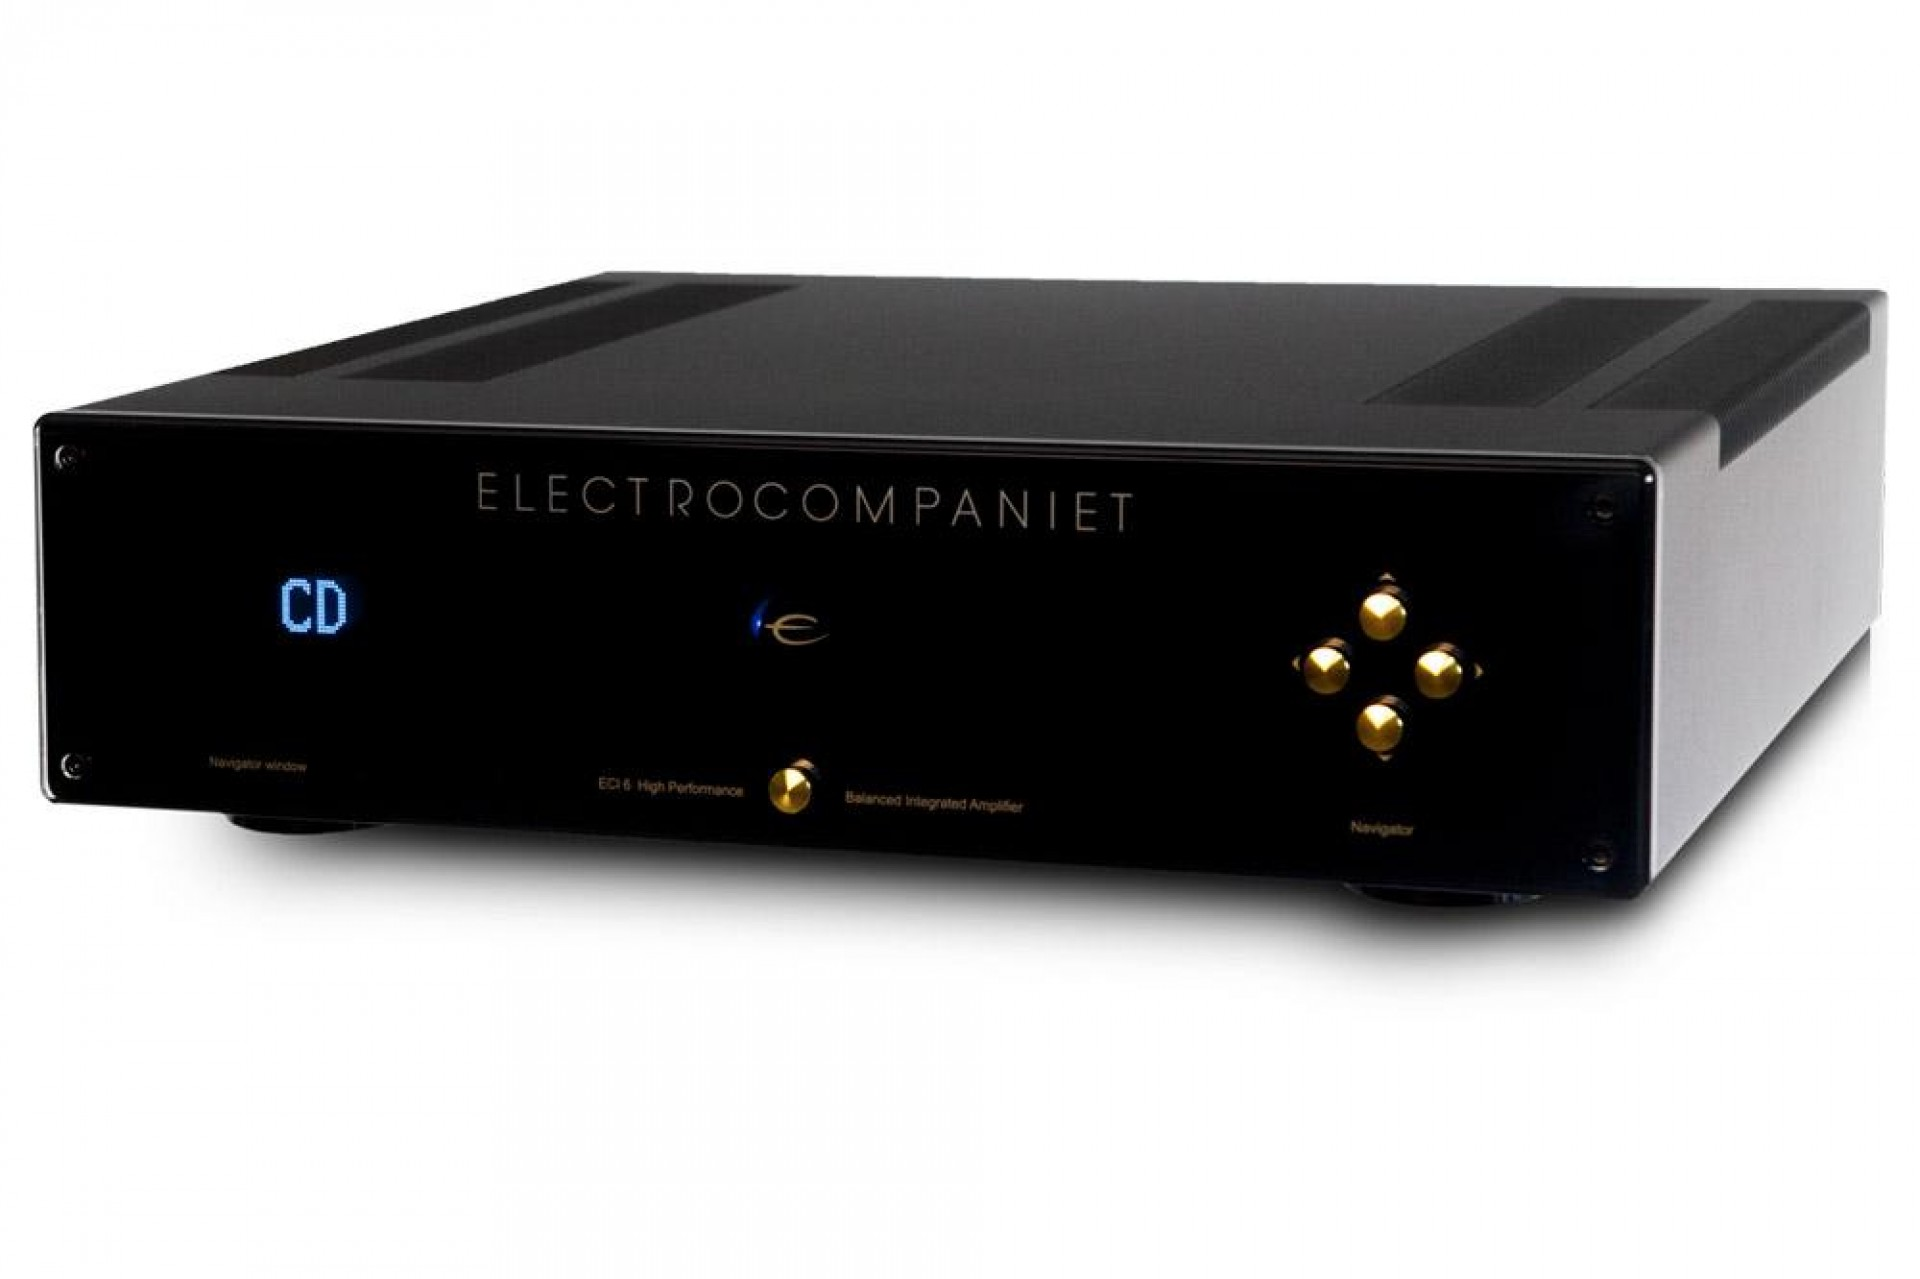 ELECTROCOMPANIET ECI 6 Integrated Amplifier